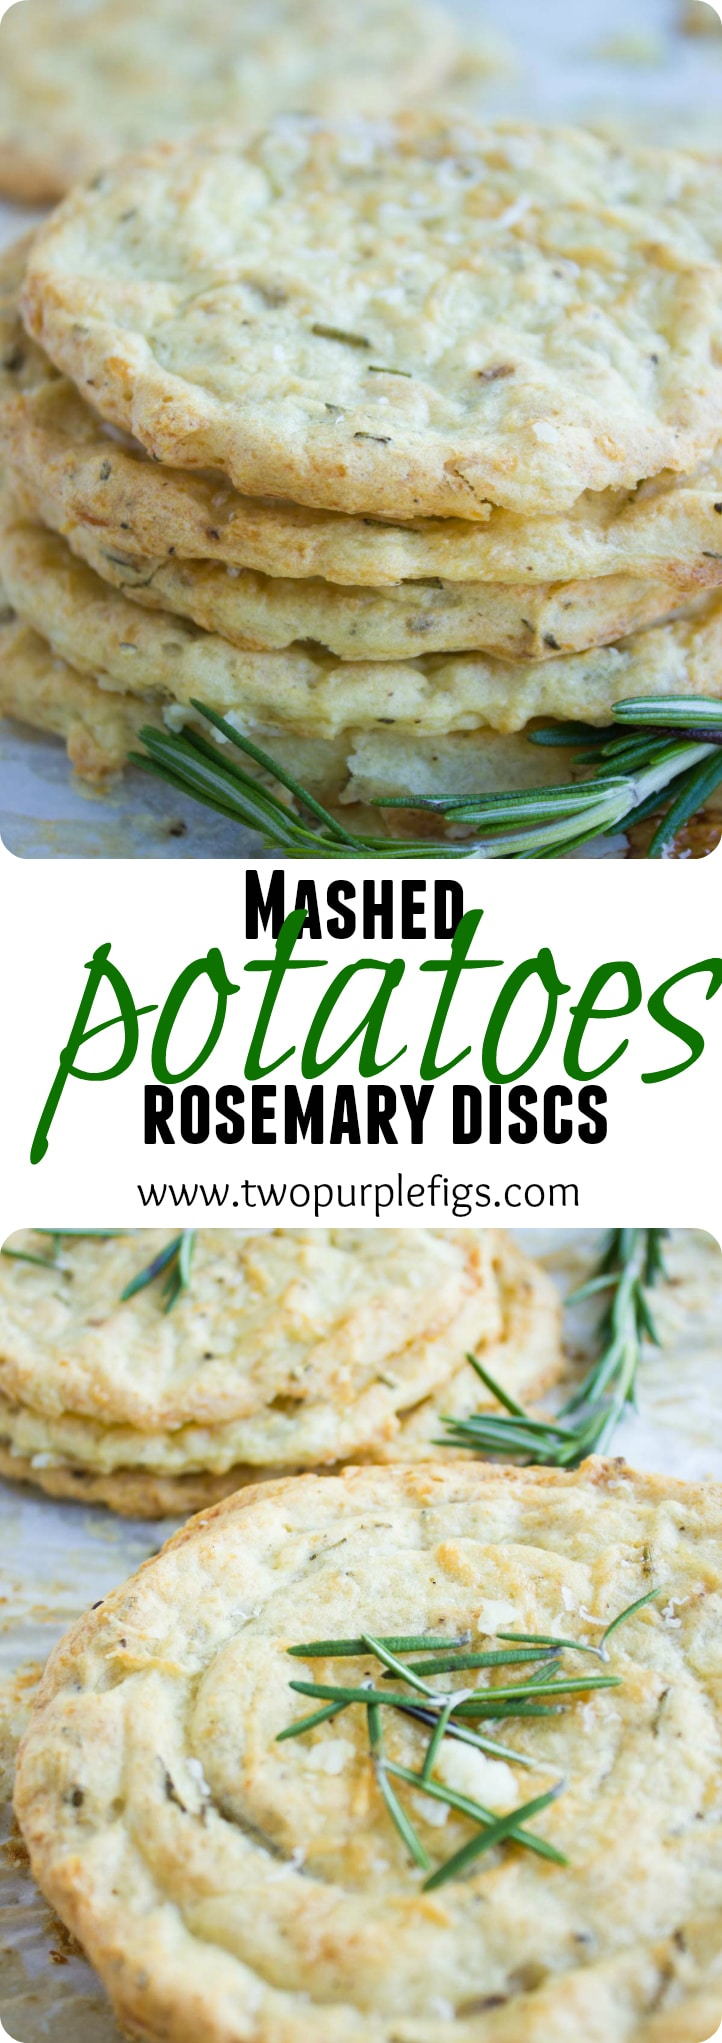 Mashed Potatoes Rosemary Discs | If life gives you leftover mashed potatoes, make these Mashed potatoes Rosemary Crisps! Being gluten-free and paleo, they make for the perfect crowd-pleasing accompaniment for a classic Sunday Roast - but these also taste delicious as a little savory snack! Season them with any herbs or cheeses you want. #side, #snack, #paleo, #glutenfree, #easy, #Thanksgiving, #realfood